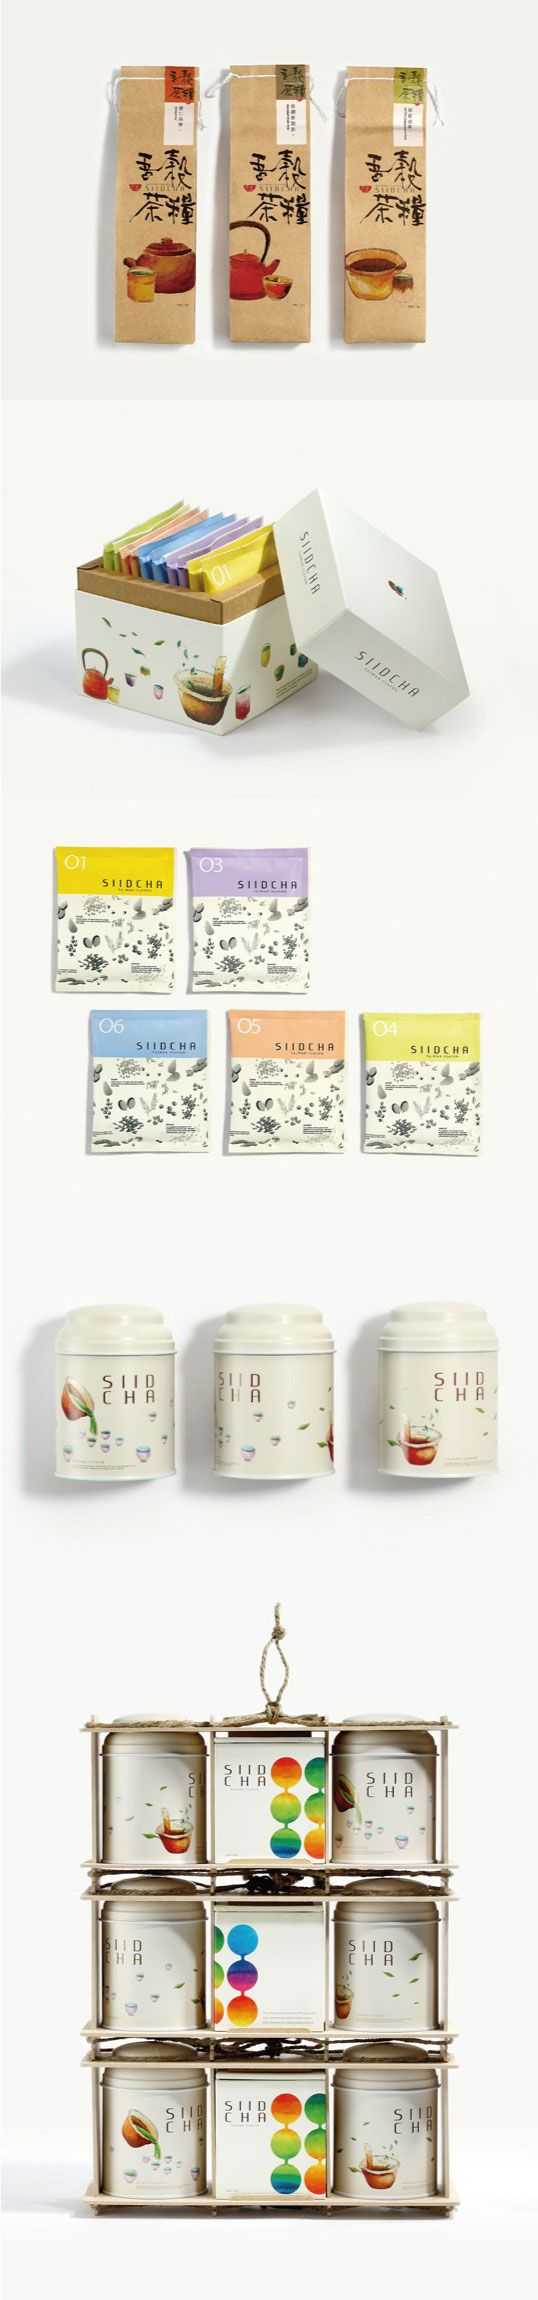 Delicate use of graphics over the various containers. #packagedesign #designinspiration PD